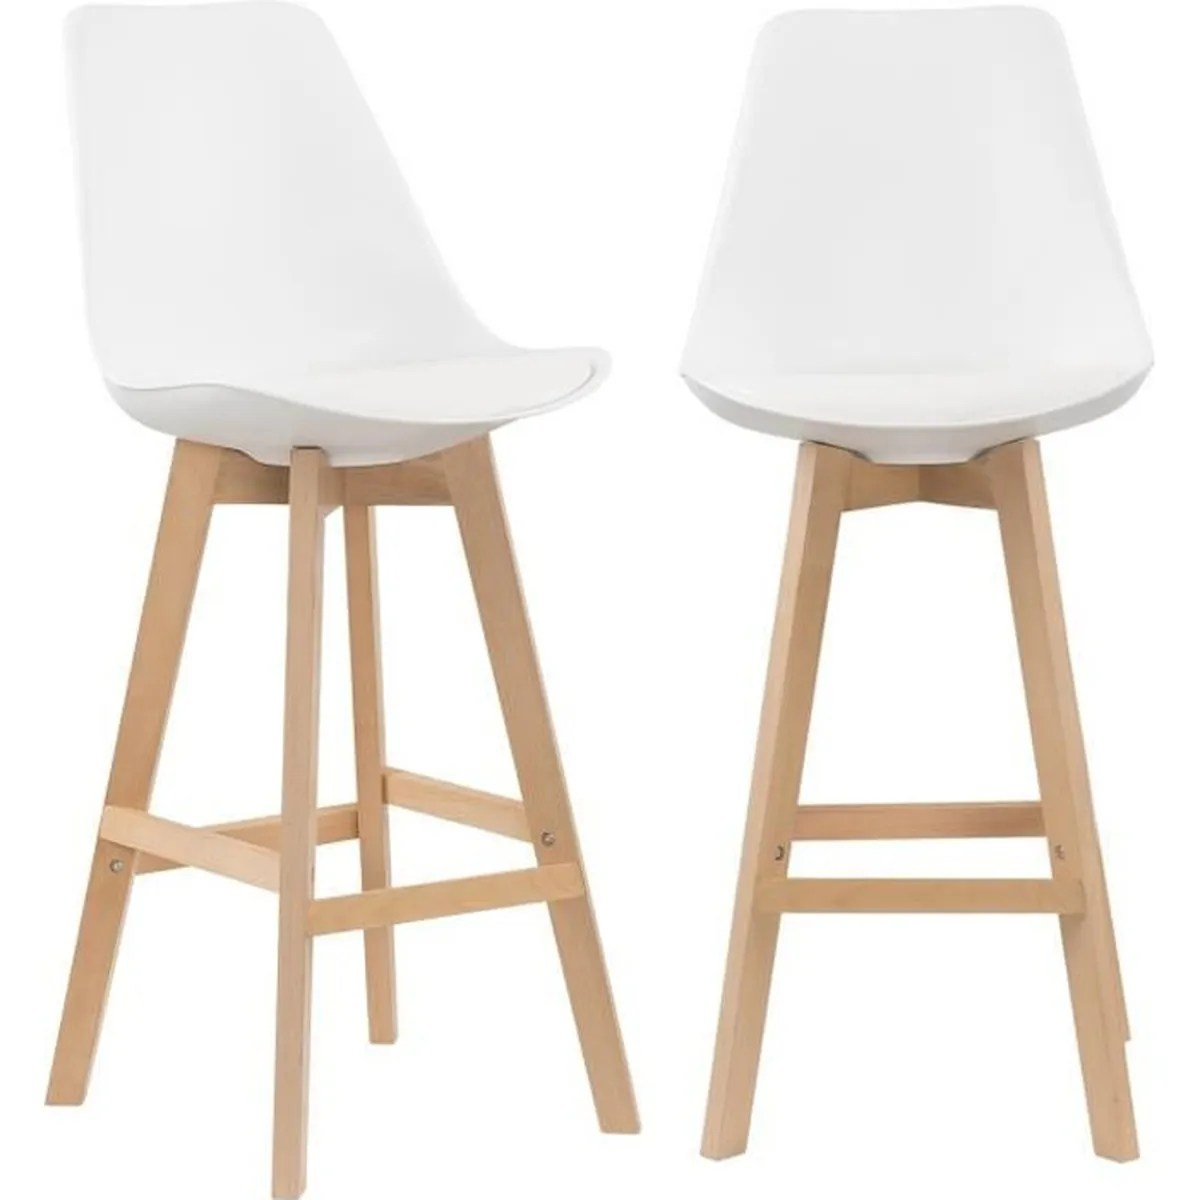 Tabouret Bar Cocktail Scandinave Lot De 2 Tabourets De Bar Scandinave Blanc Pieds En Bois